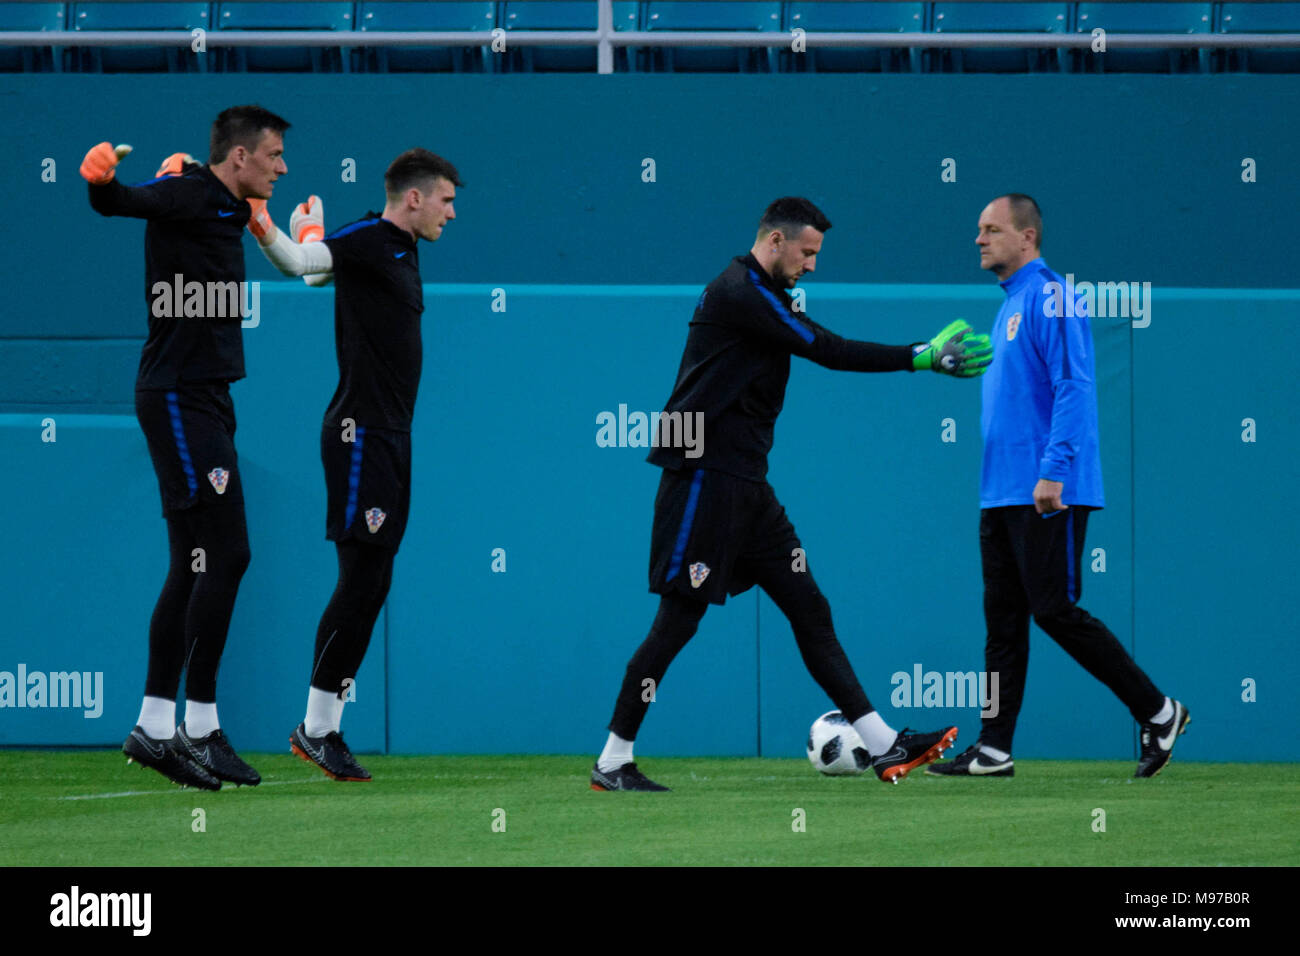 March 22, 2018 - Miami, United States - The preparation of the goalkeepers of the Croatian national team is vital to face the World Cup and a strong group where they seek to classify..The Croatia national football team will play a friendly match against Peru on Friday at 23 March at the Hard Rock Cafe Stadium in the city of Miami. (Credit Image: © Fernando Oduber/SOPA Images via ZUMA Wire) - Stock Image